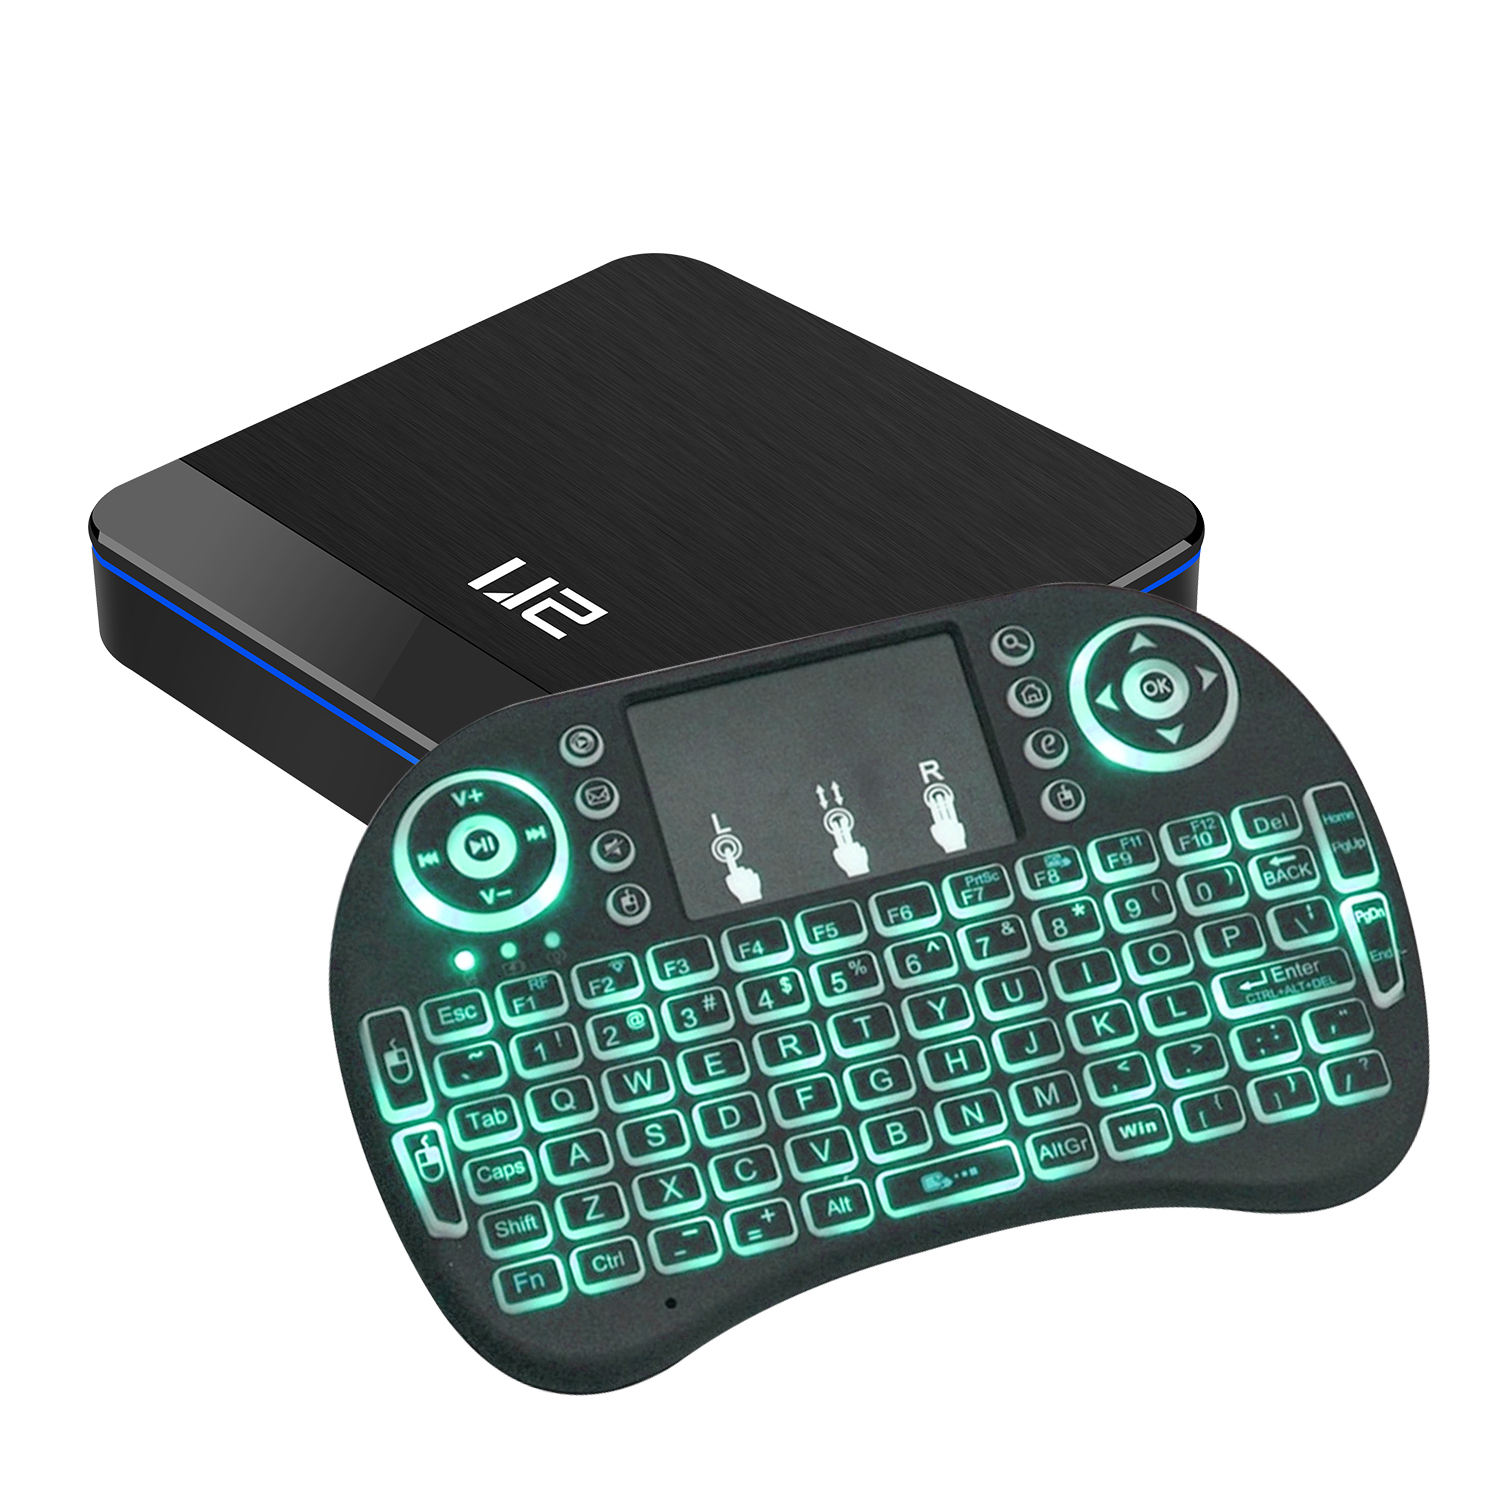 U2 S905x3 Dual Wifi Gigabit <span class=keywords><strong>Ethernet</strong></span> Usb3.0 Cccam Cline Smart <span class=keywords><strong>Android</strong></span> 9.0 Tv Pvr Kotak dengan Keyboard